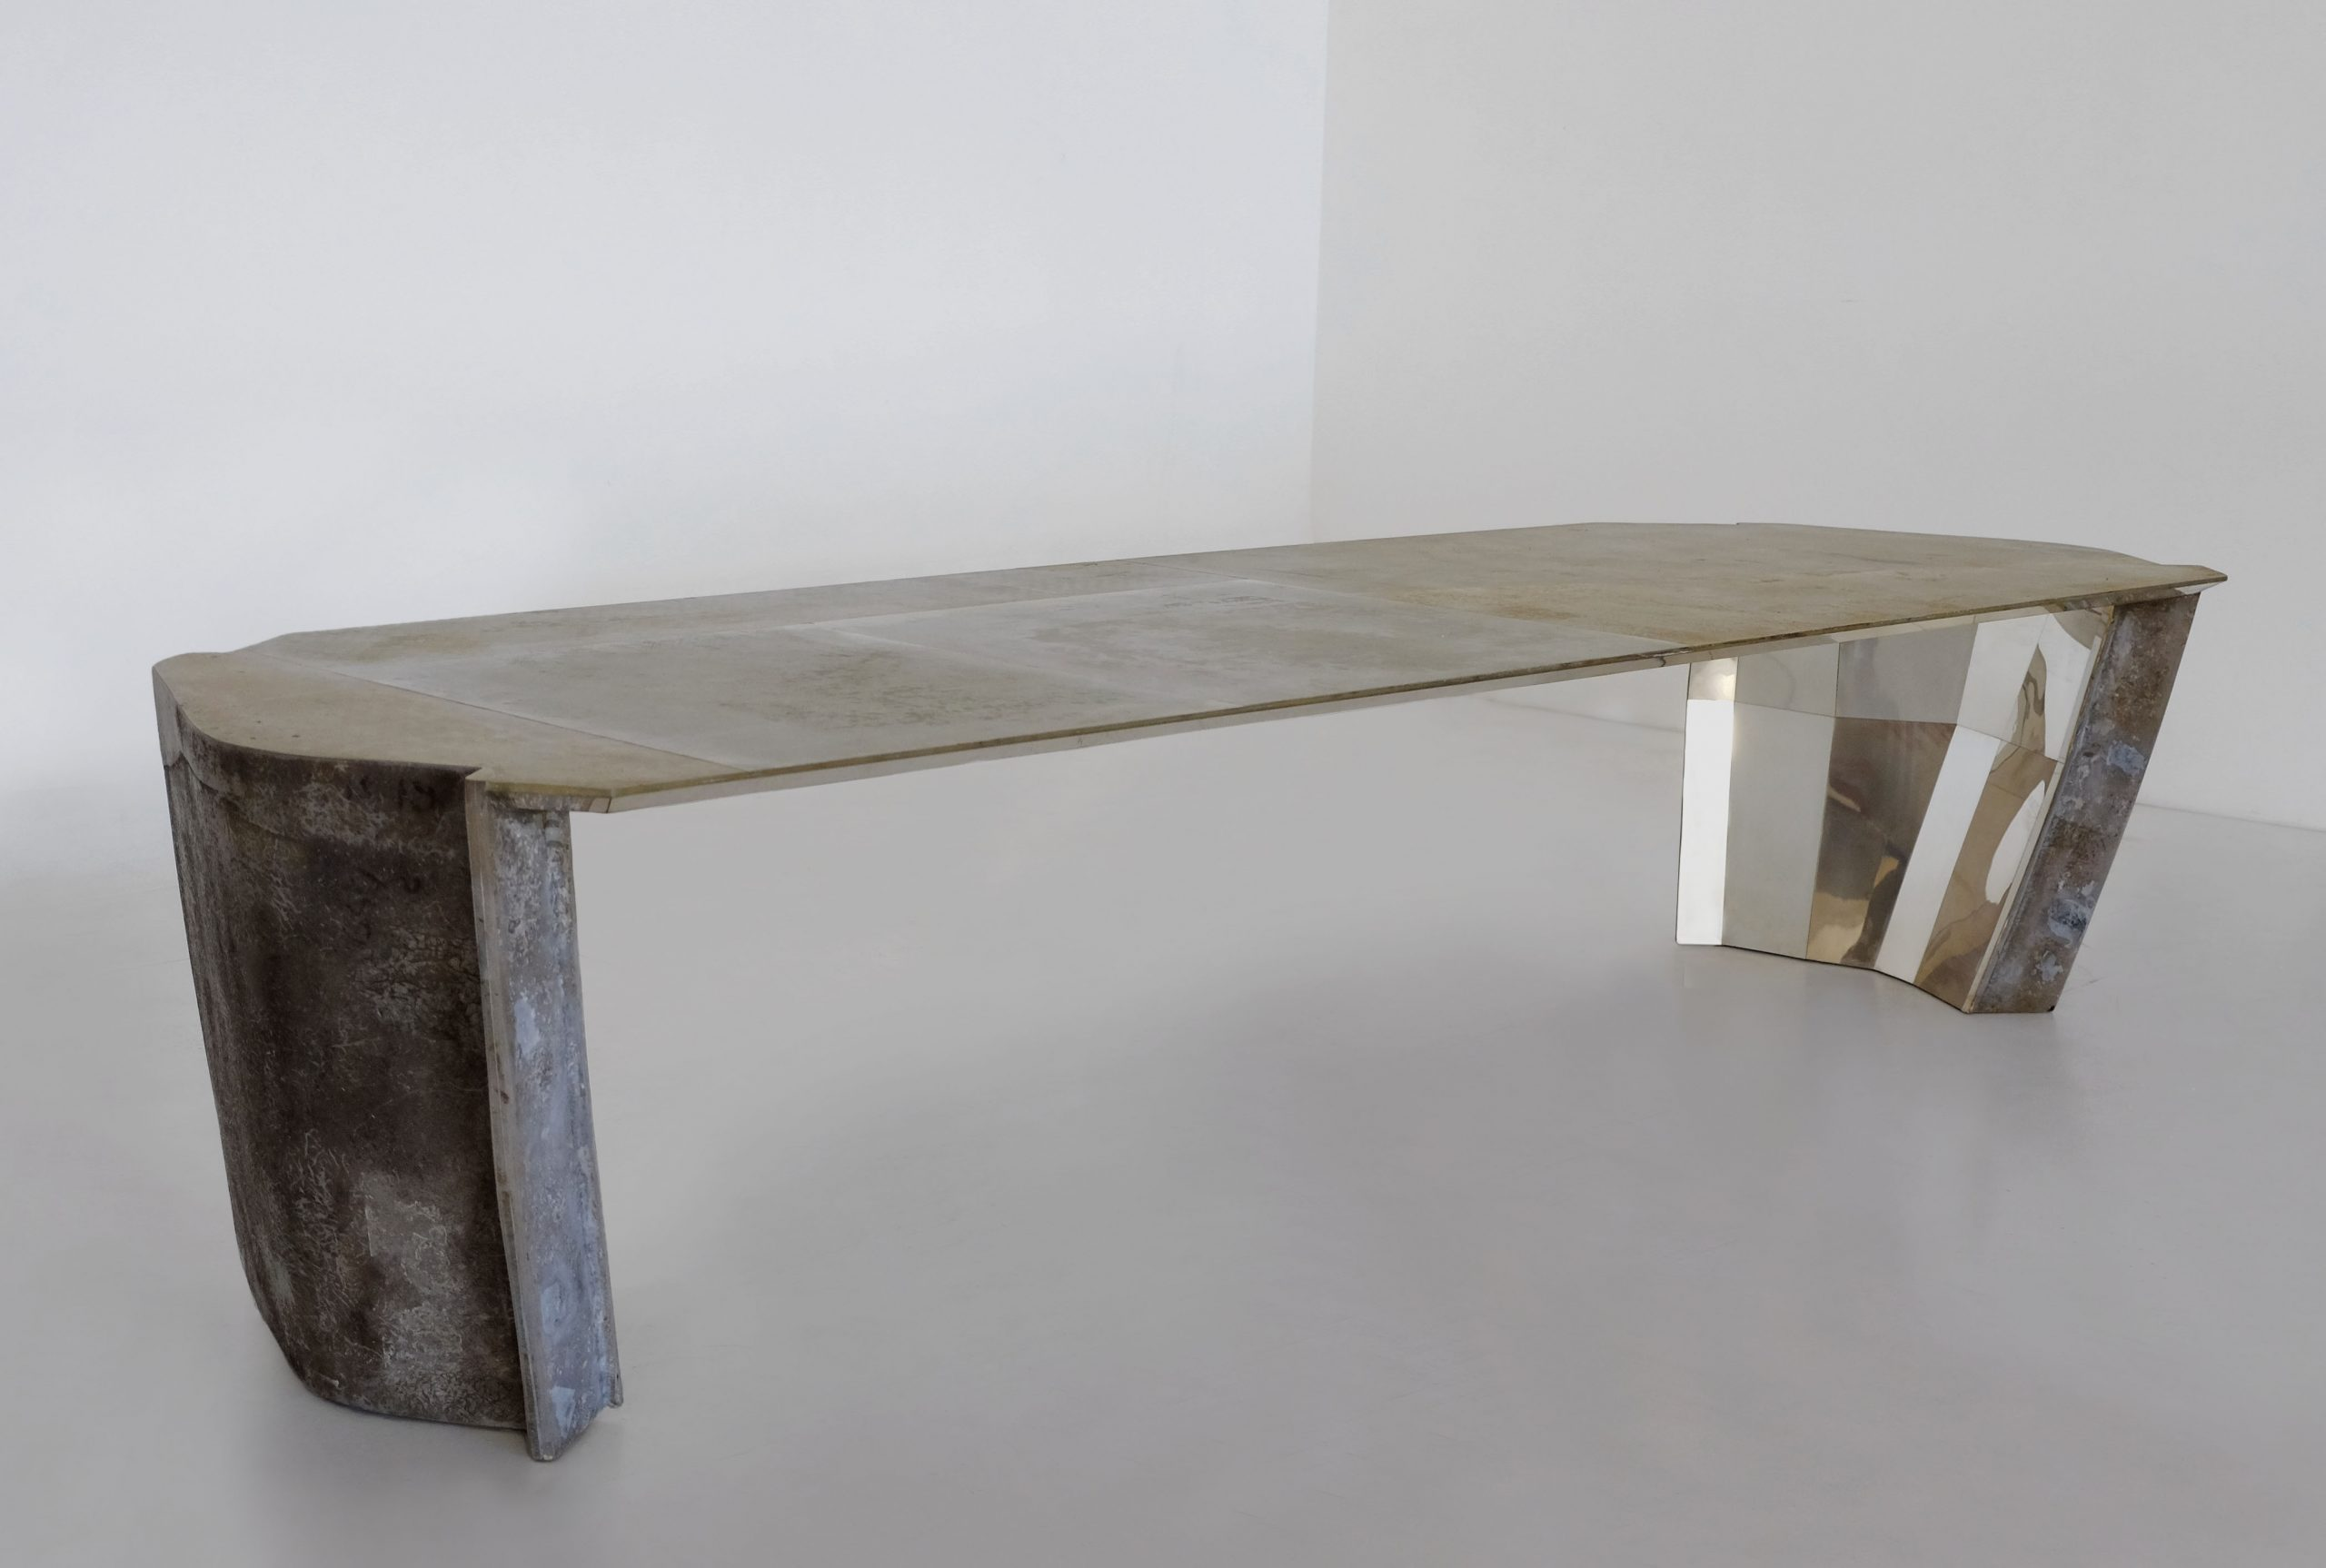 Unravel Vincenzo De Cotiis Simple Yet Contemporary Dining Table Designs (7) vincenzo de cotiis Unravel Vincenzo De Cotiis Simple Yet Contemporary Furniture Designs Unravel Vincenzo De Cotiis Simple Yet Contemporary Dining Table Designs 7 scaled